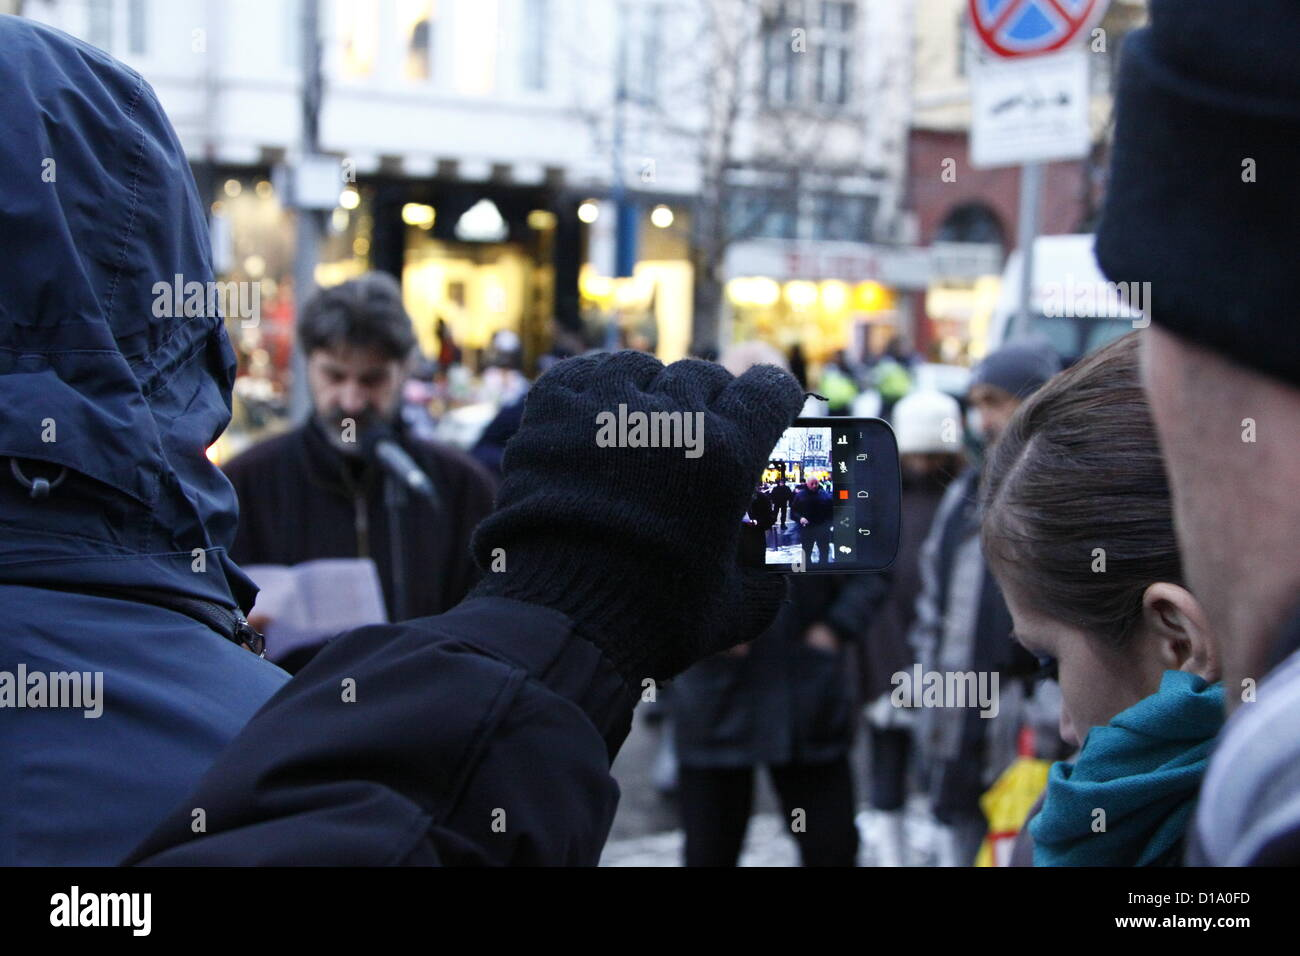 Sofia, Bulgaria; 12th December 2012. A demonstrator filming the 'Tomato Revolution' rally in front of the - Stock Image